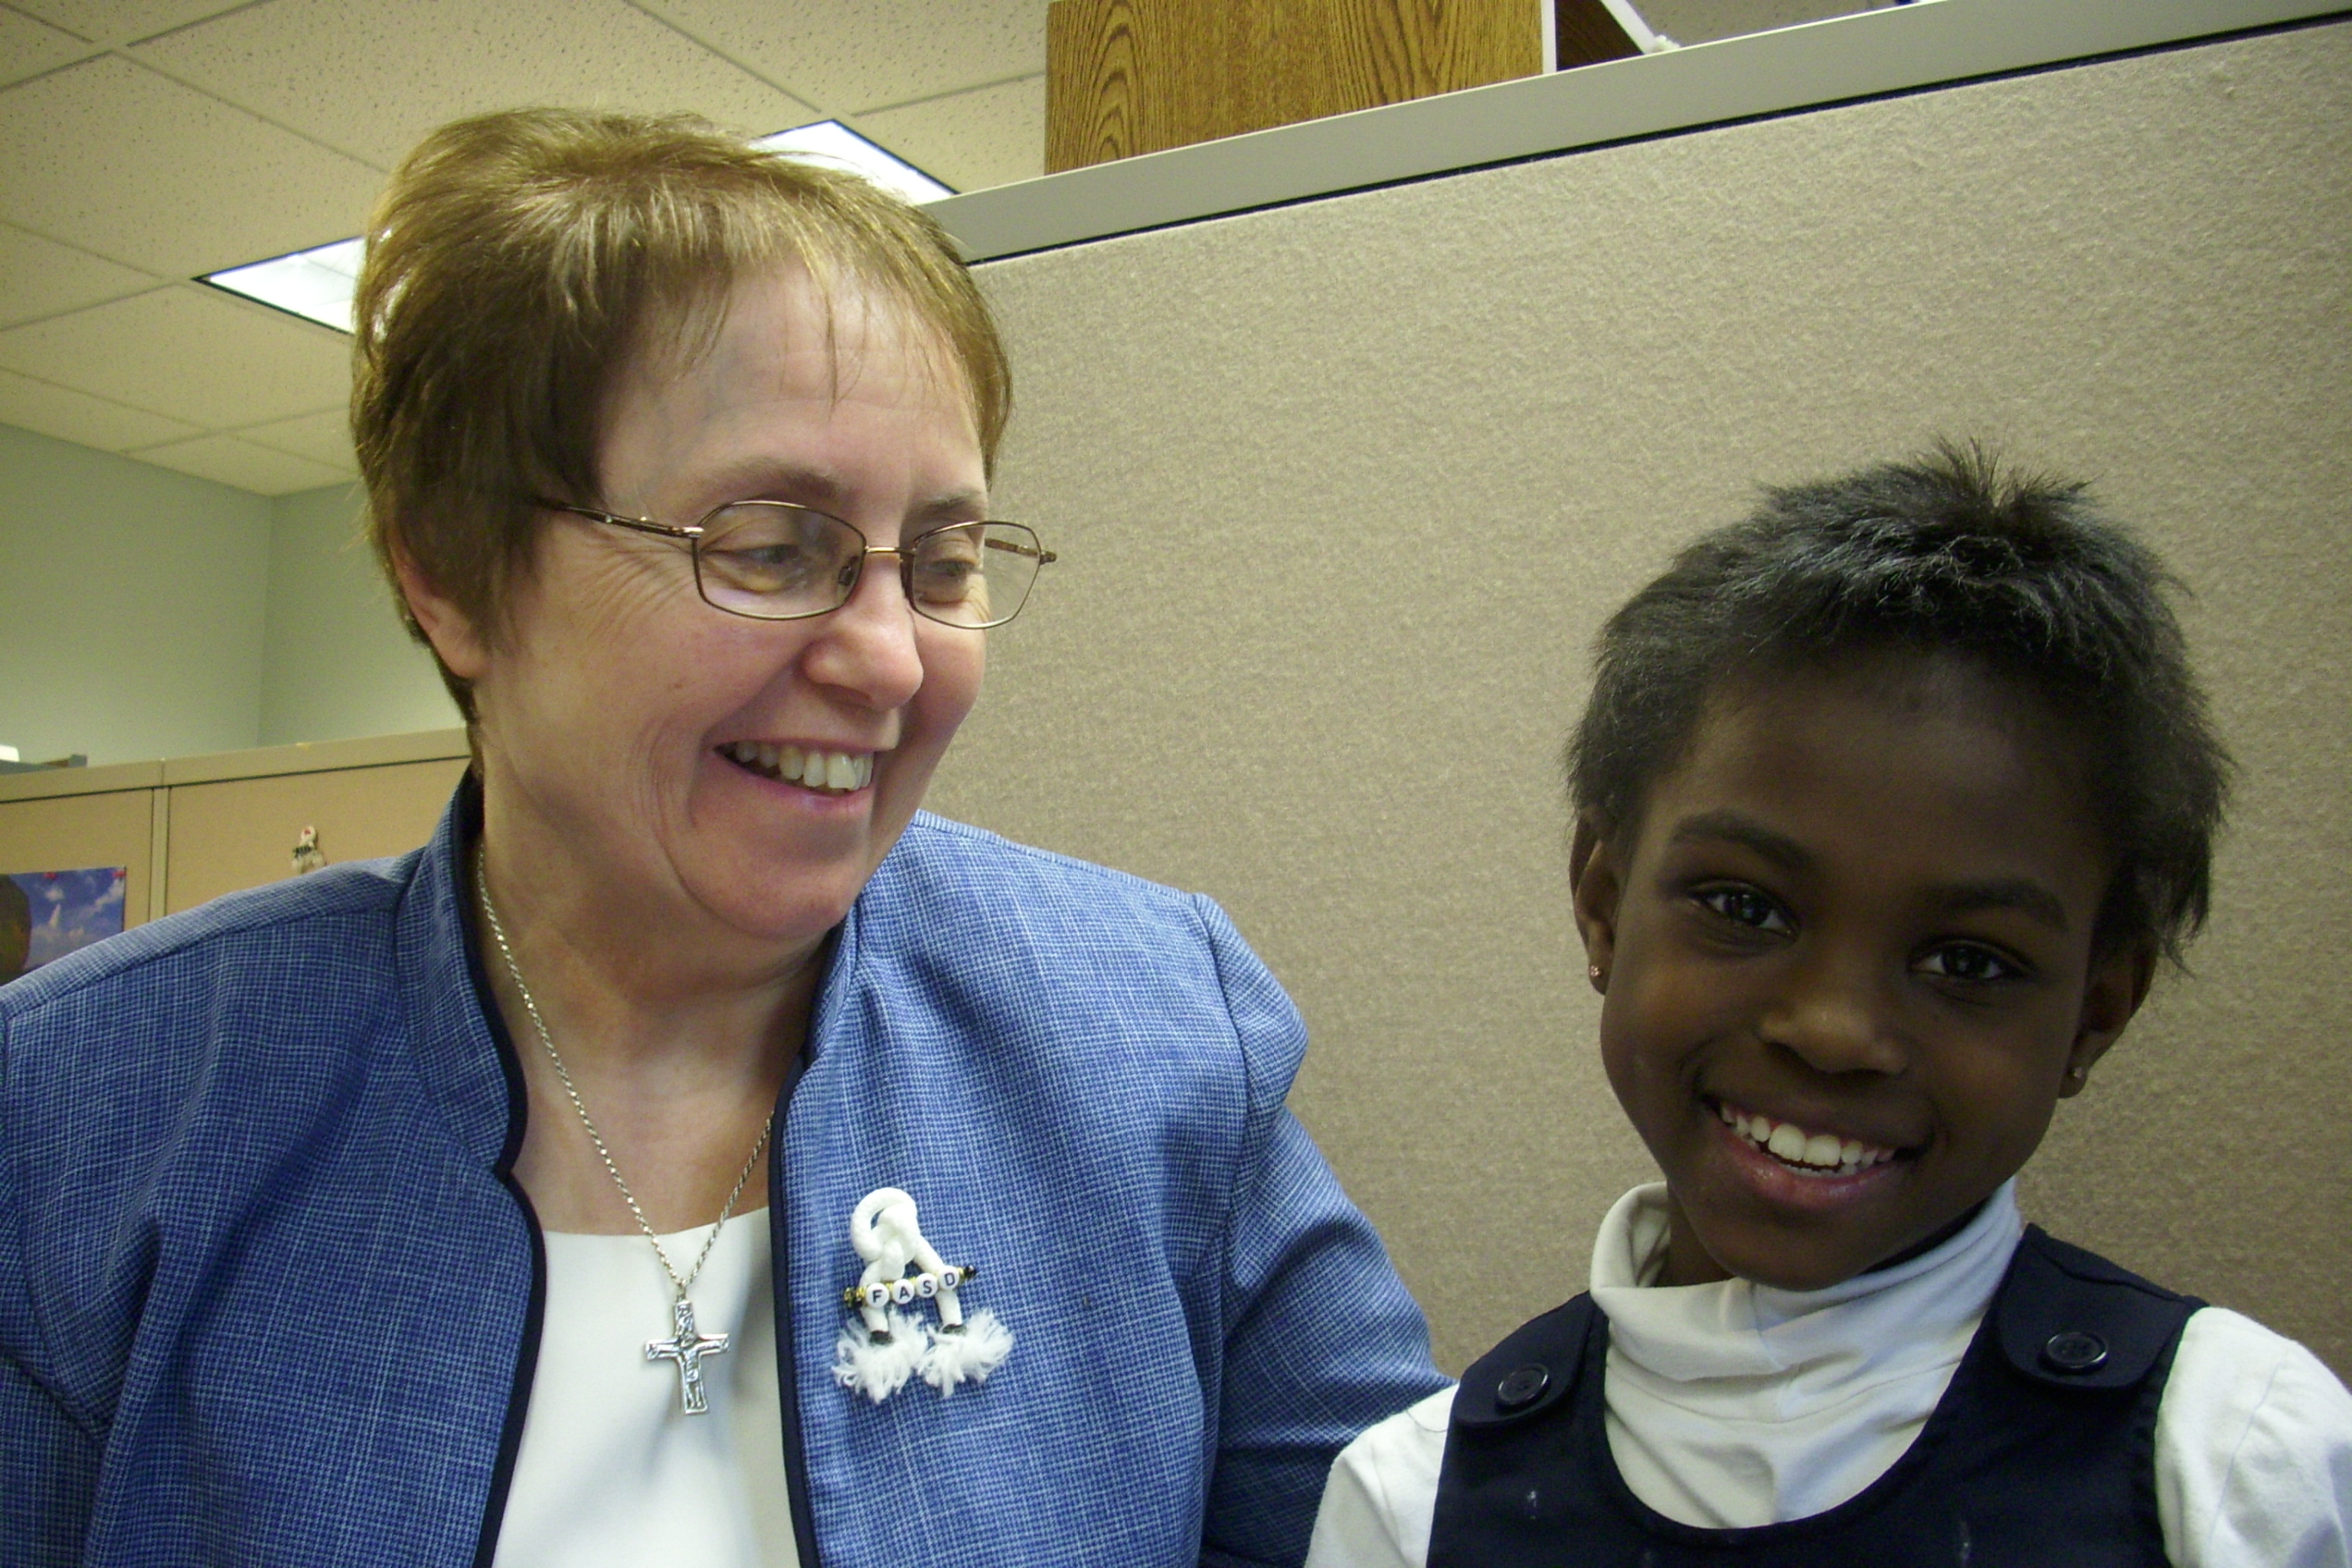 Sr. Suzette with FASD child